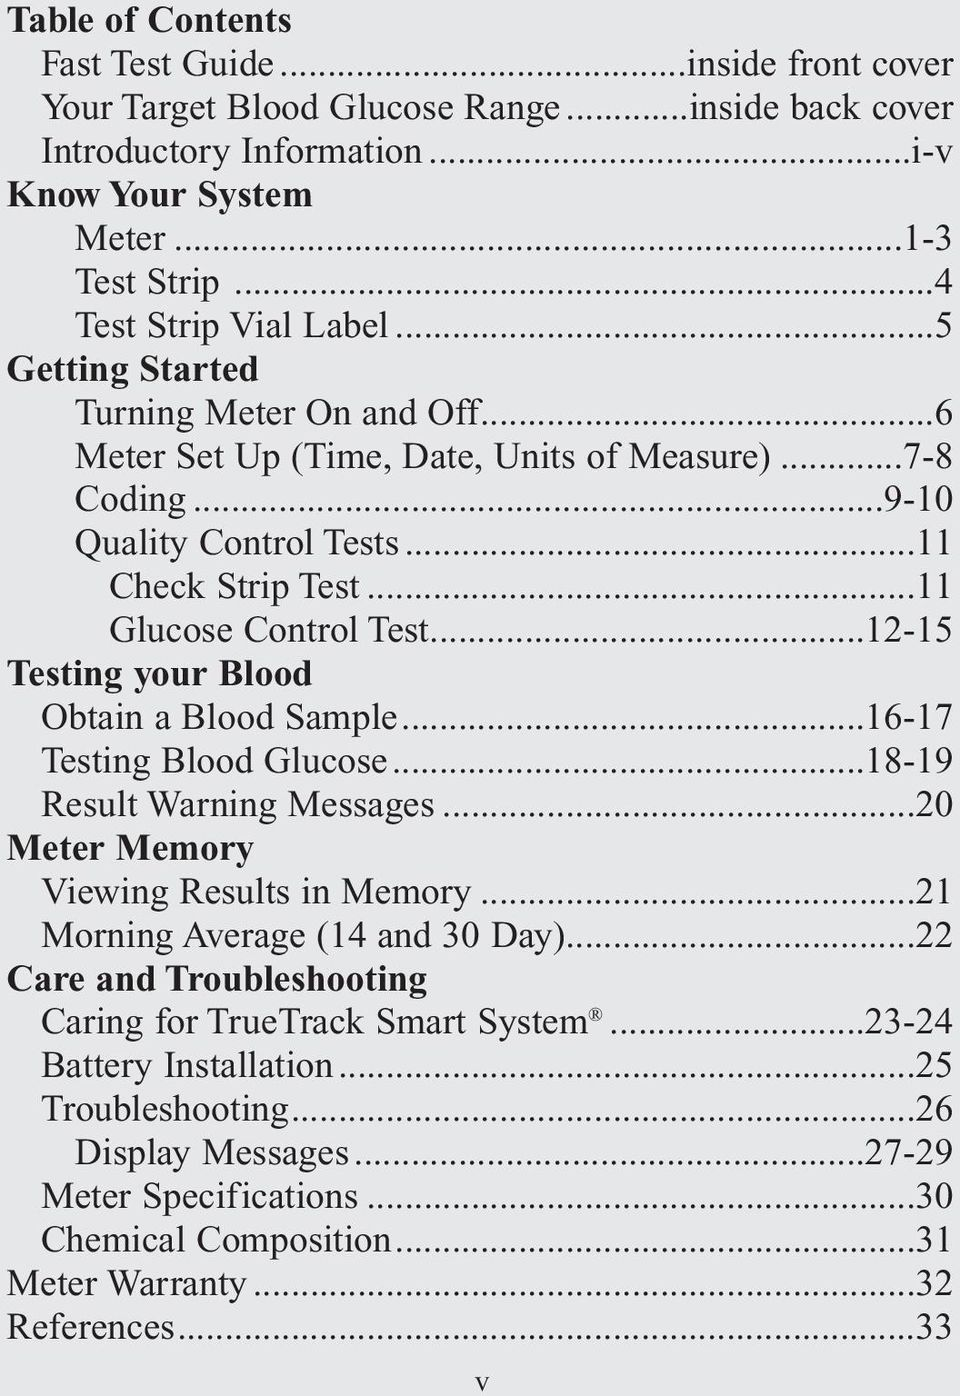 ..11 Glucose Control Test...12-15 Testing your Blood Obtain a Blood Sample...16-17 Testing Blood Glucose...18-19 Result Warning Messages...20 Meter Memory Viewing Results in Memory.